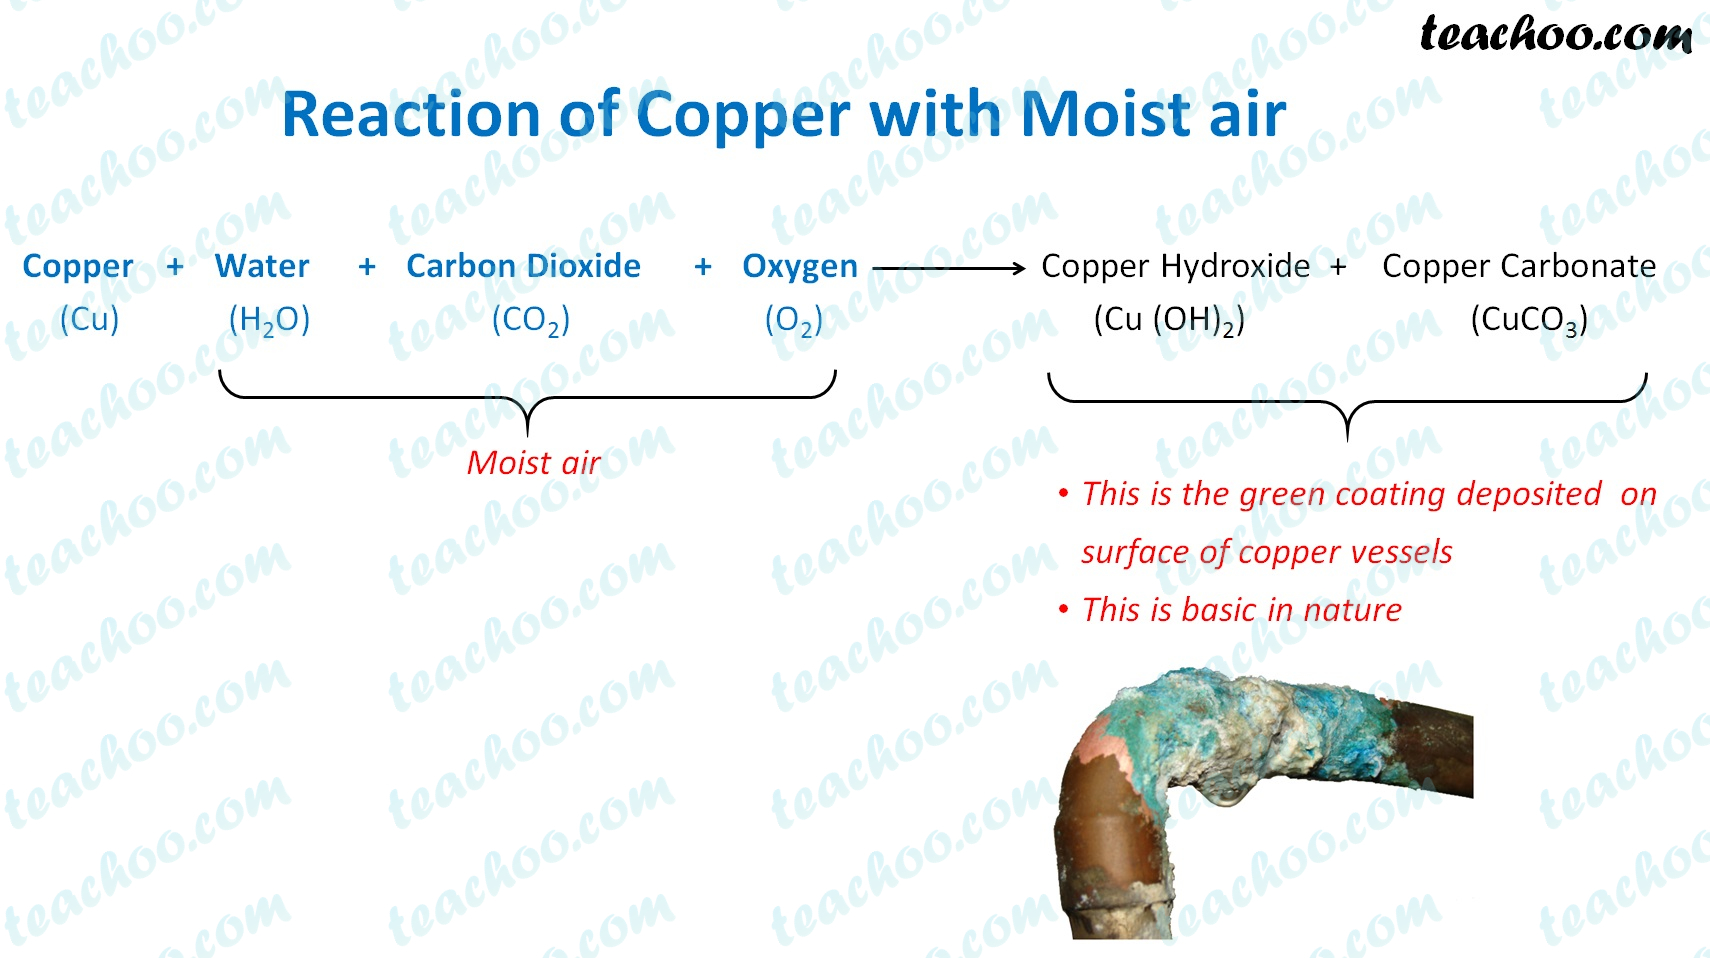 reaction-of-cooper-with-moist-air.jpg